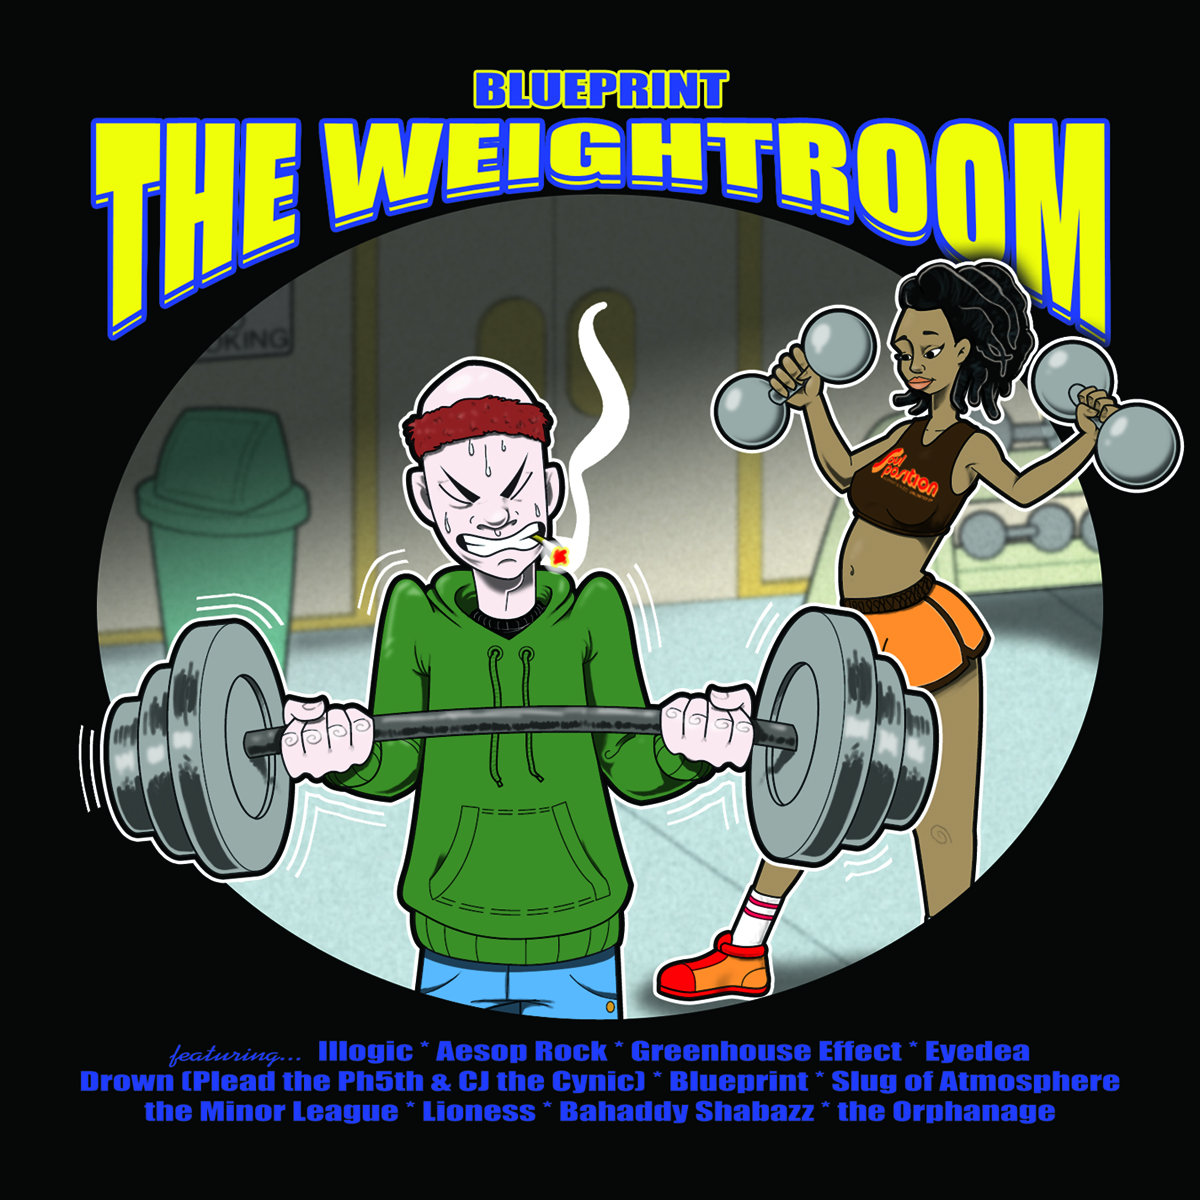 The weight room blueprint by blueprint malvernweather Choice Image